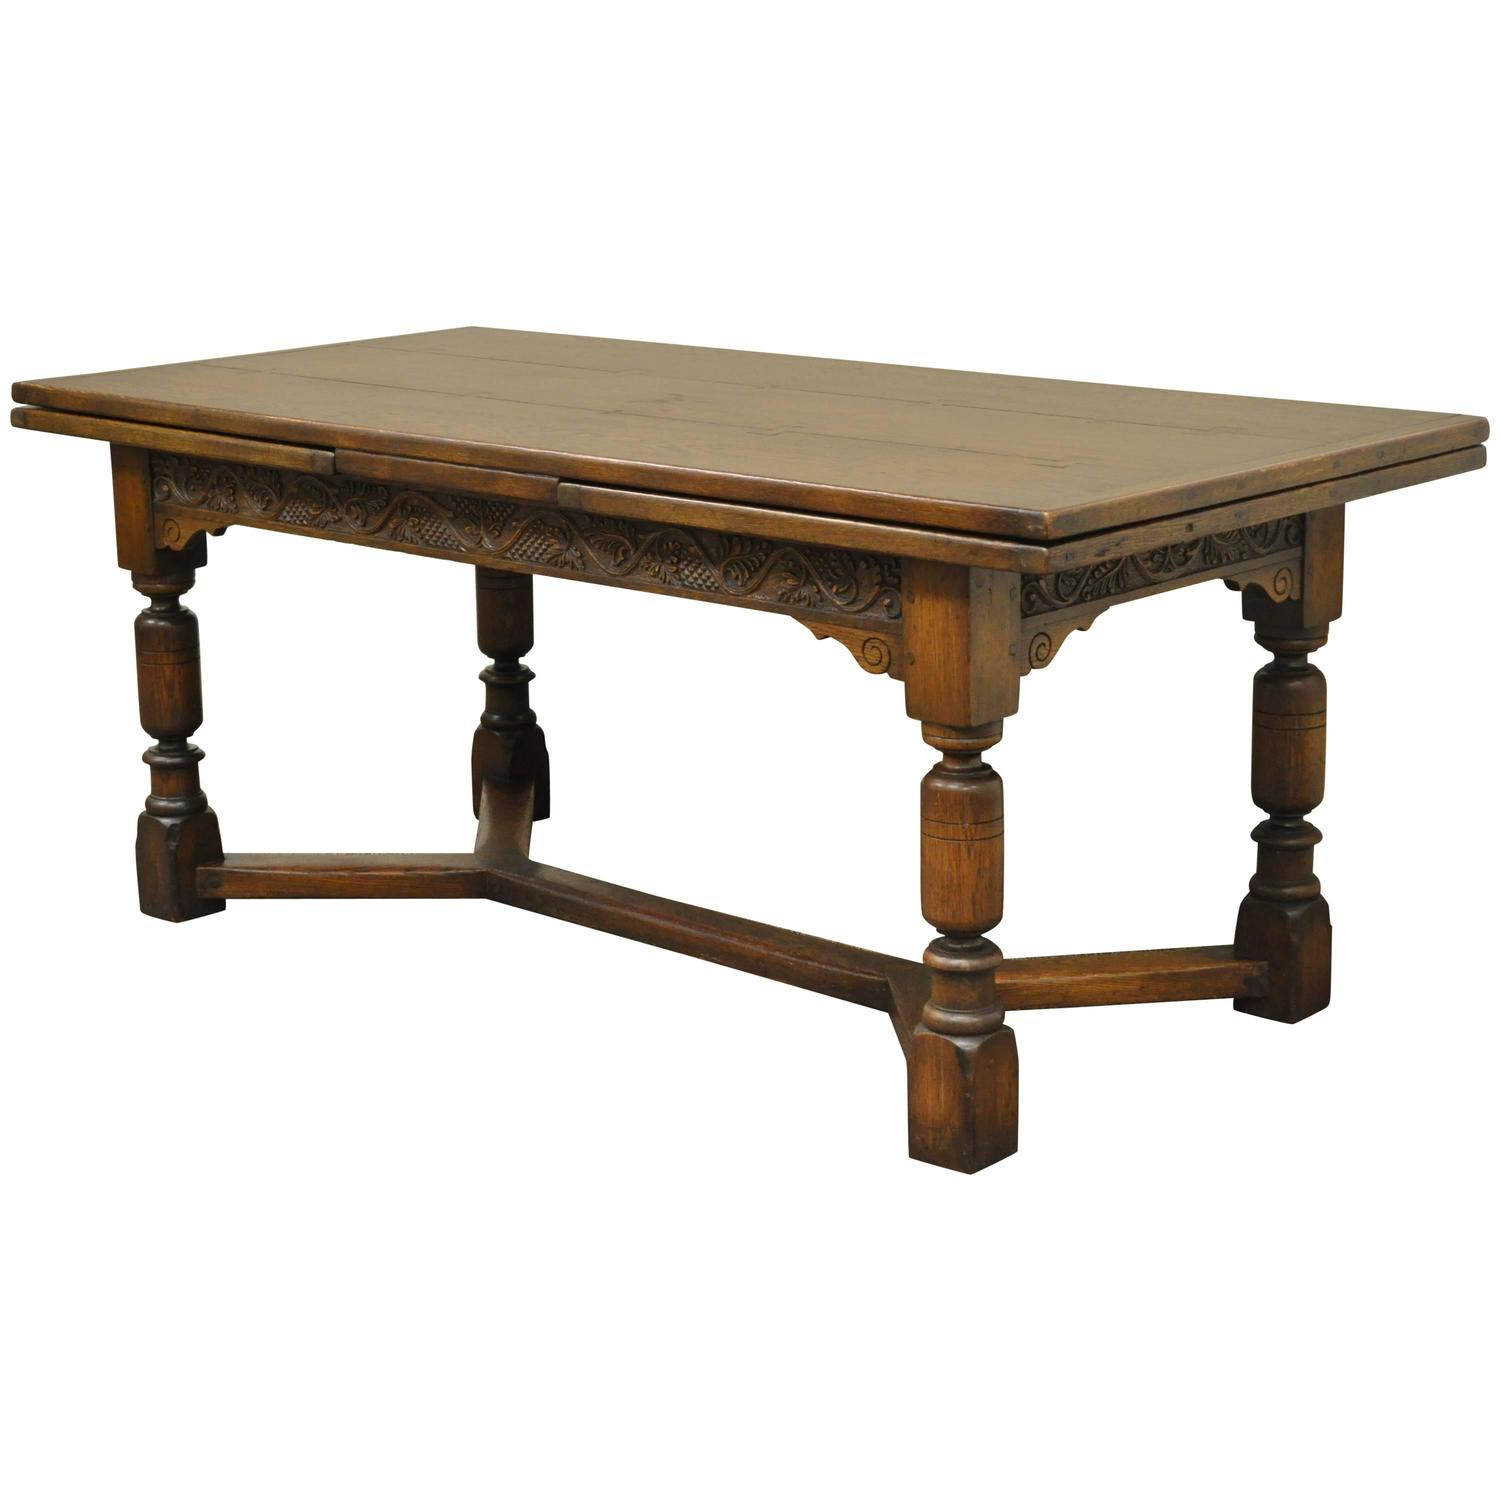 Style Refectory Extension Plank Dining Table For Sale At 1stdibs